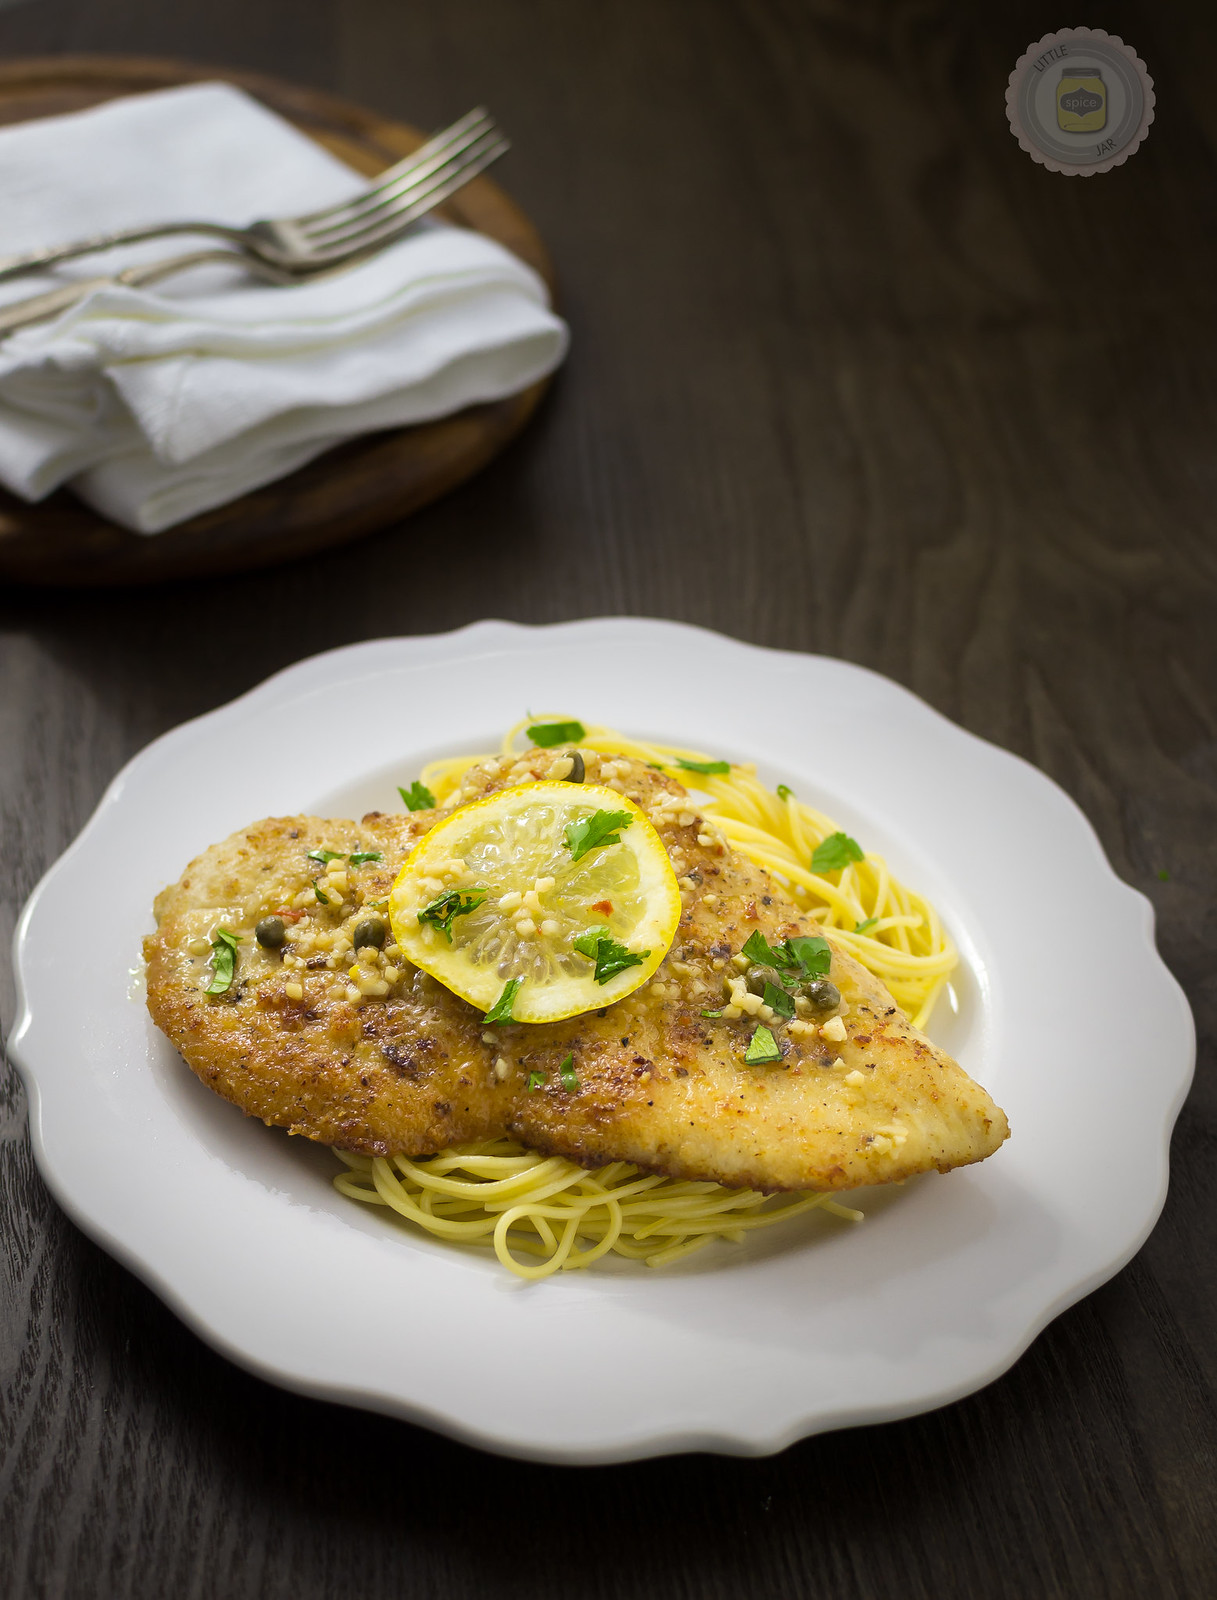 plate with prepared spaghetti topped with chicken breast with lemon slice and parsley